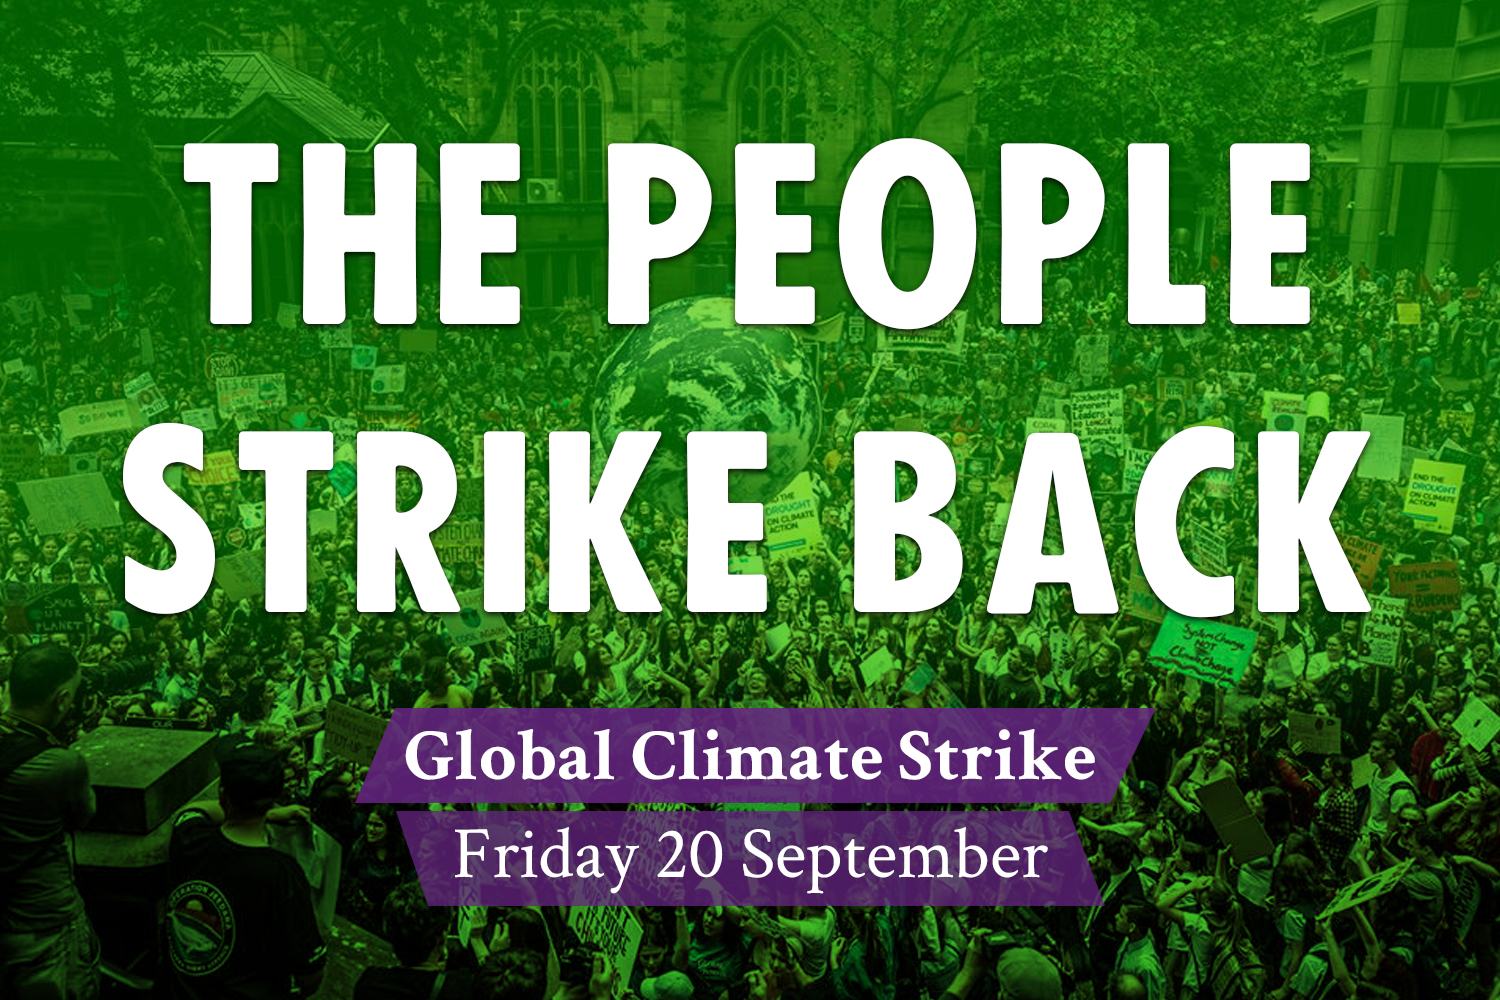 The people strike back. Global Climate Strike Friday 20 September